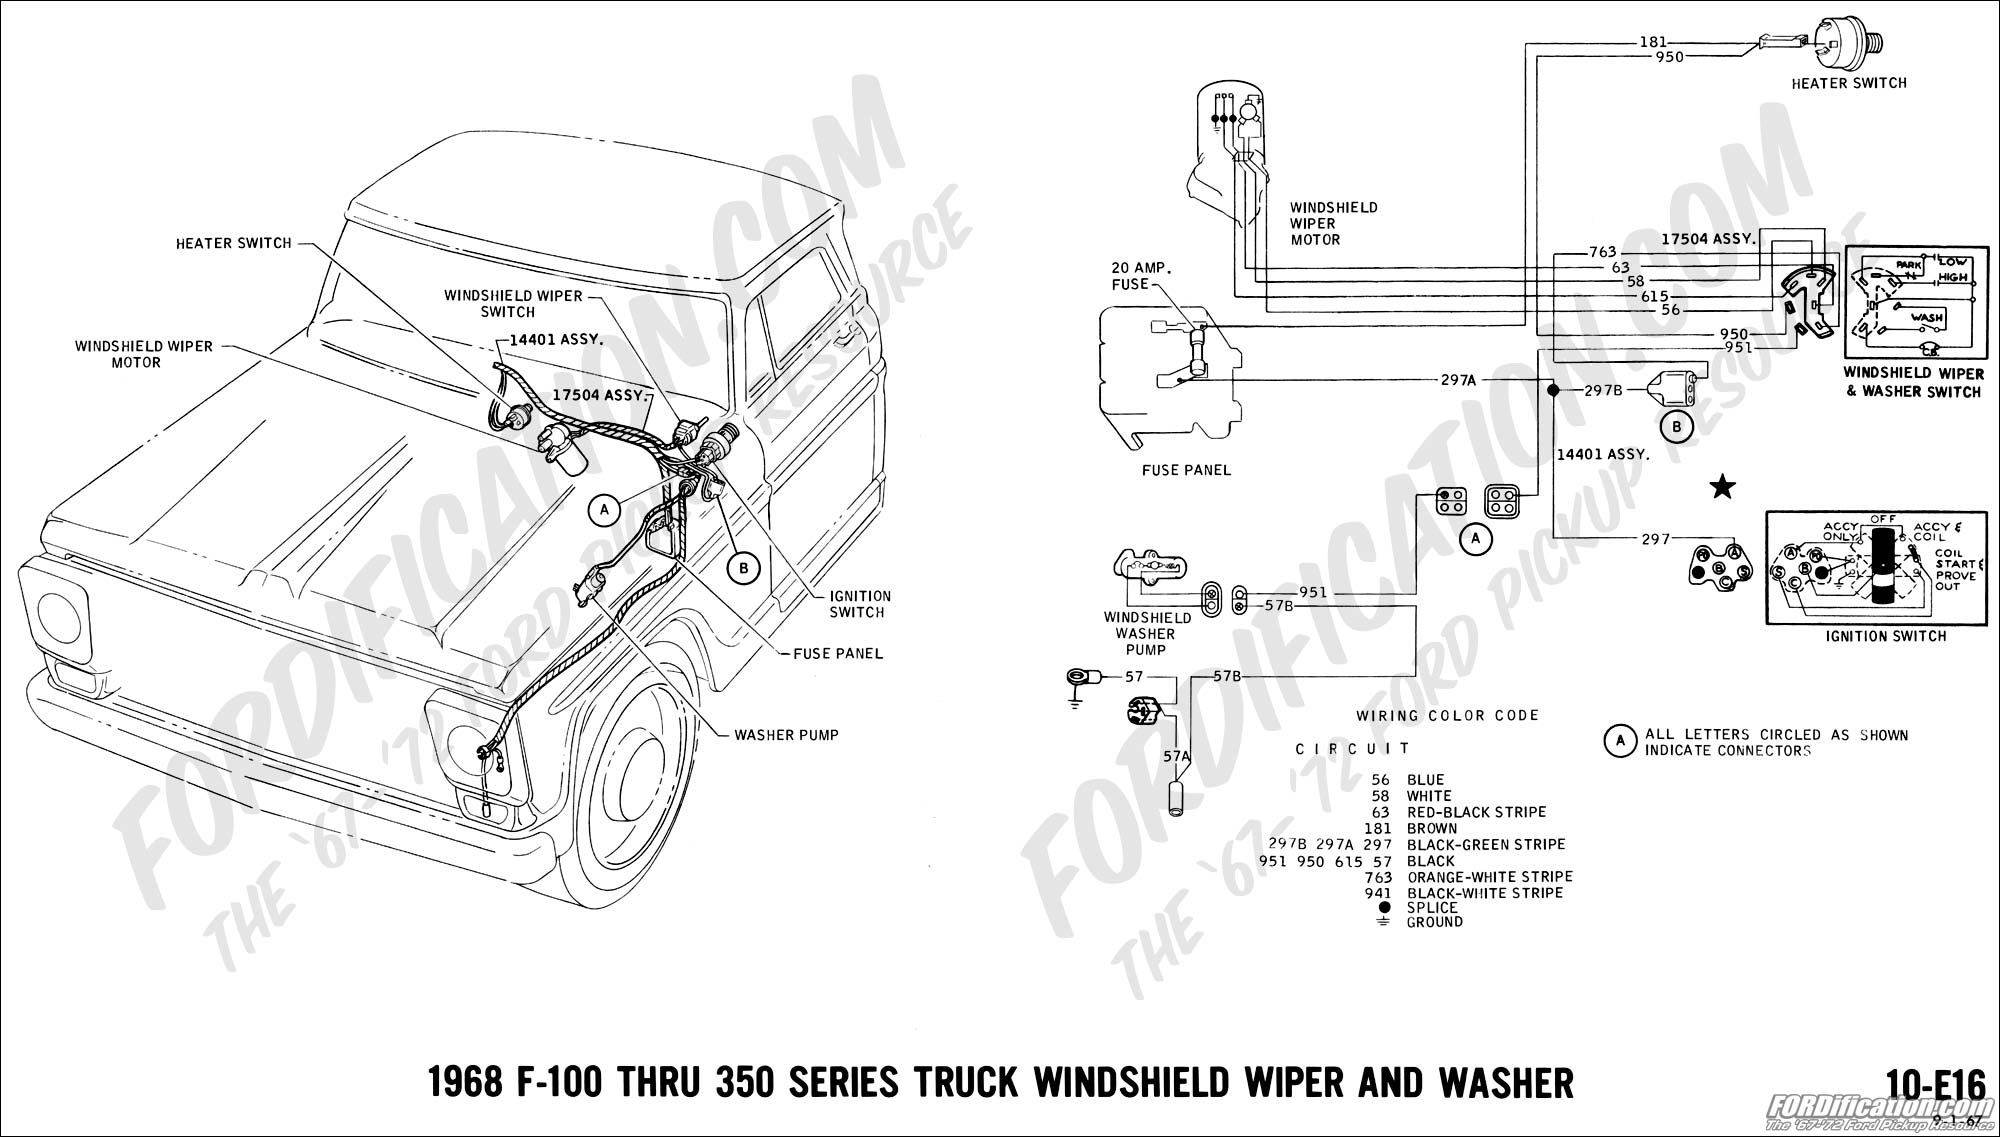 68 18 1985 ford ranger wiring diagram ford ranger fuel system diagram 1988 ford ranger alternator wiring diagram at panicattacktreatment.co